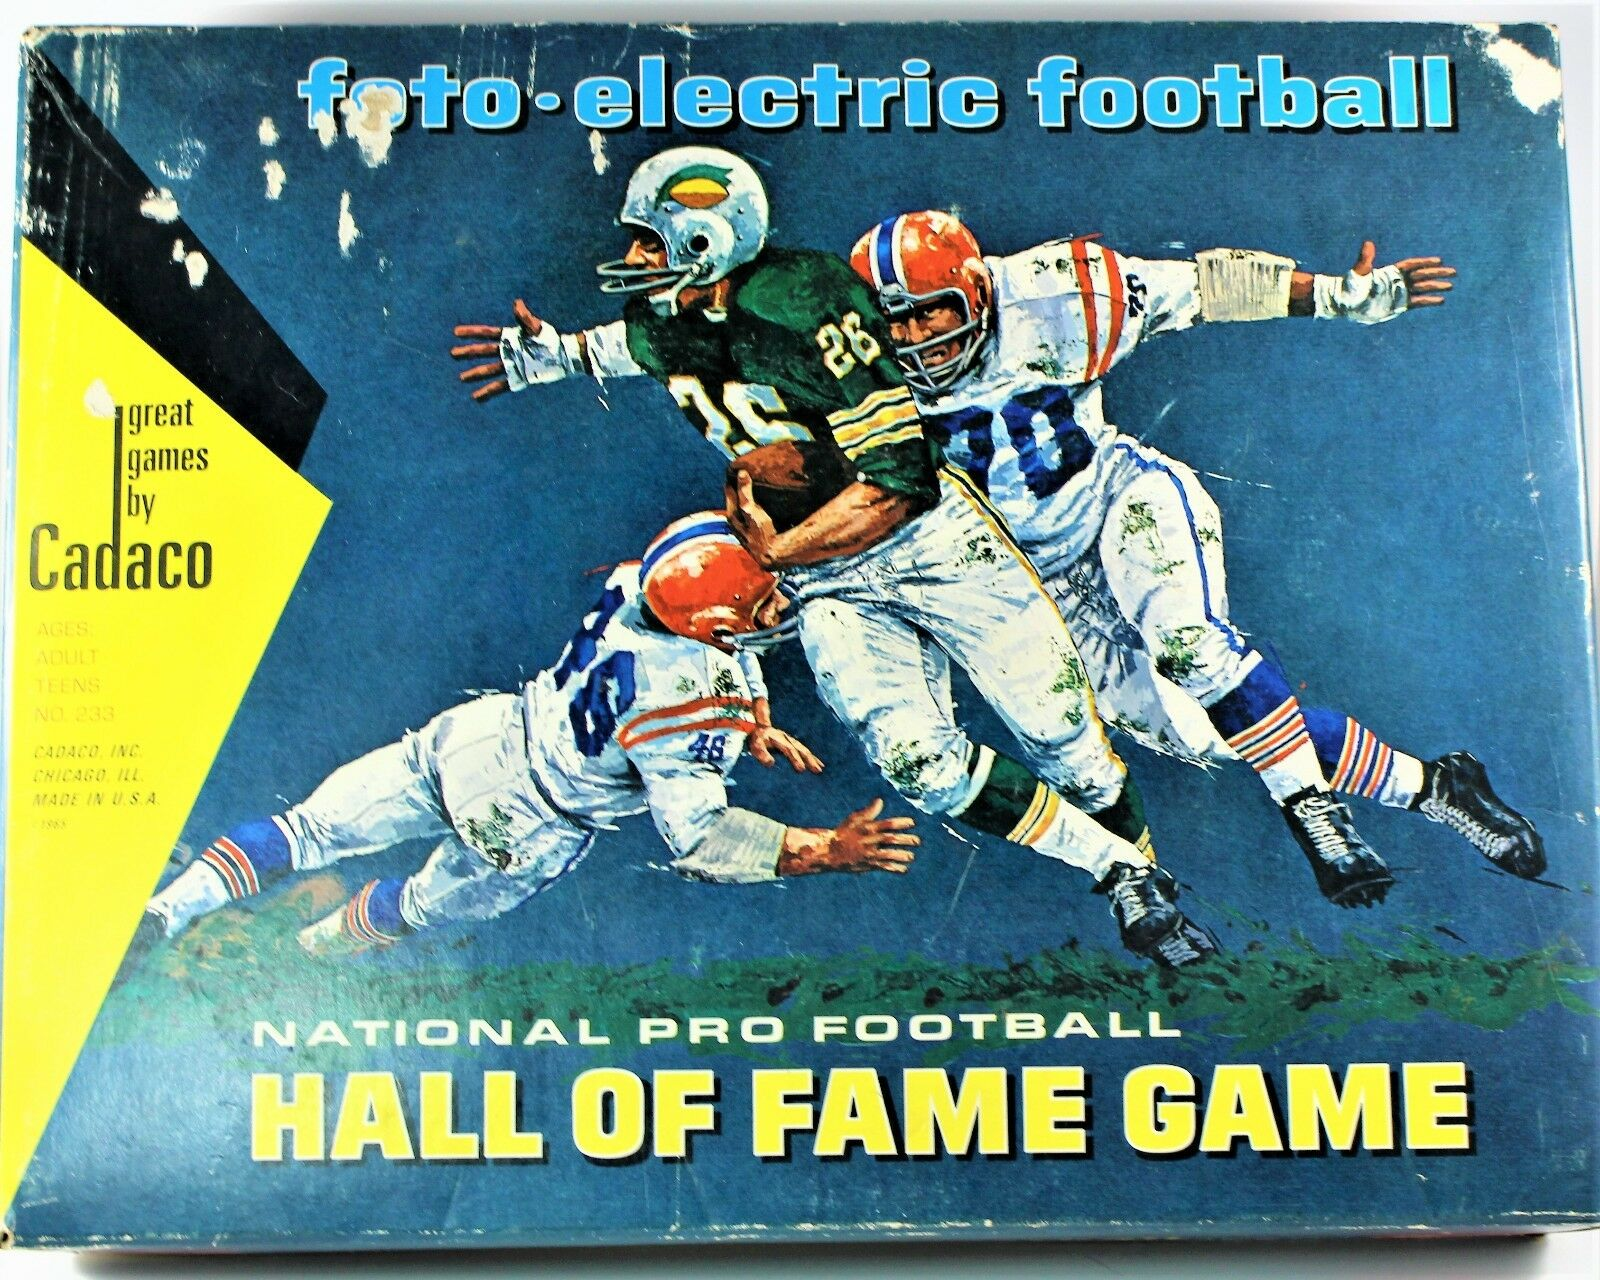 Aco foto Electric football Hall of Fame GAME National Pro 1965 oeuvres complètes